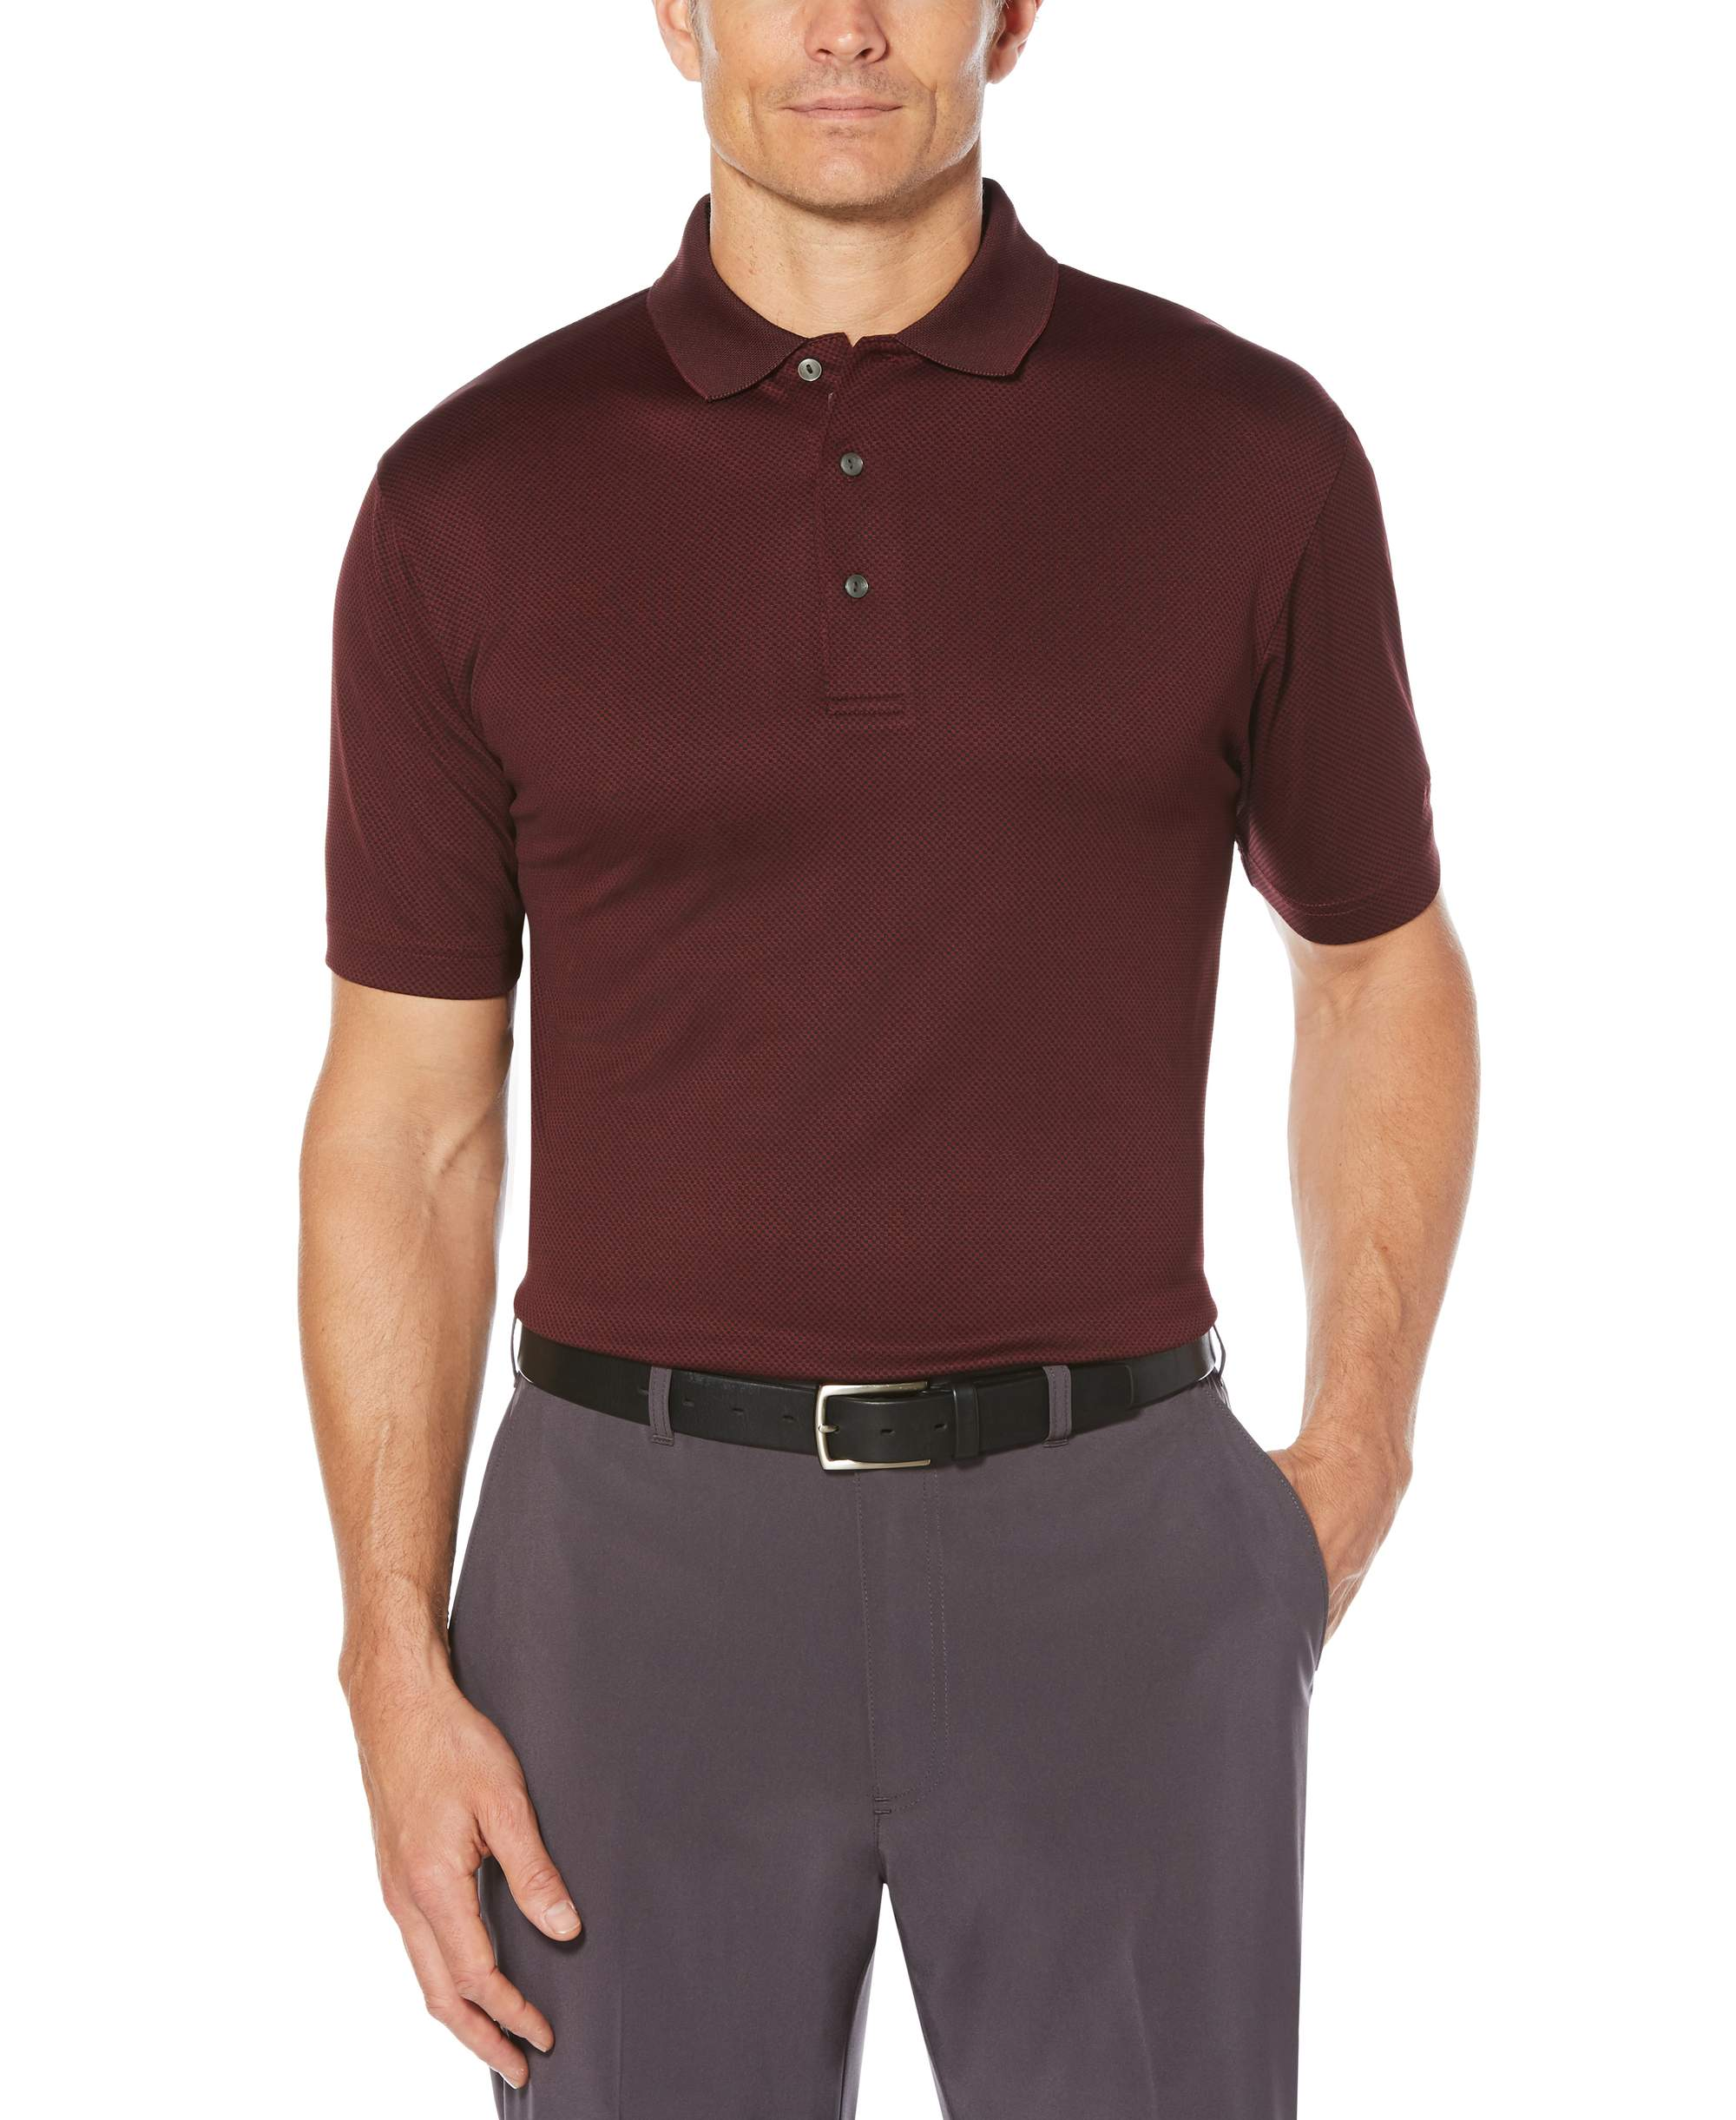 Big Men's Performance Colorblock Short Sleeve Polo